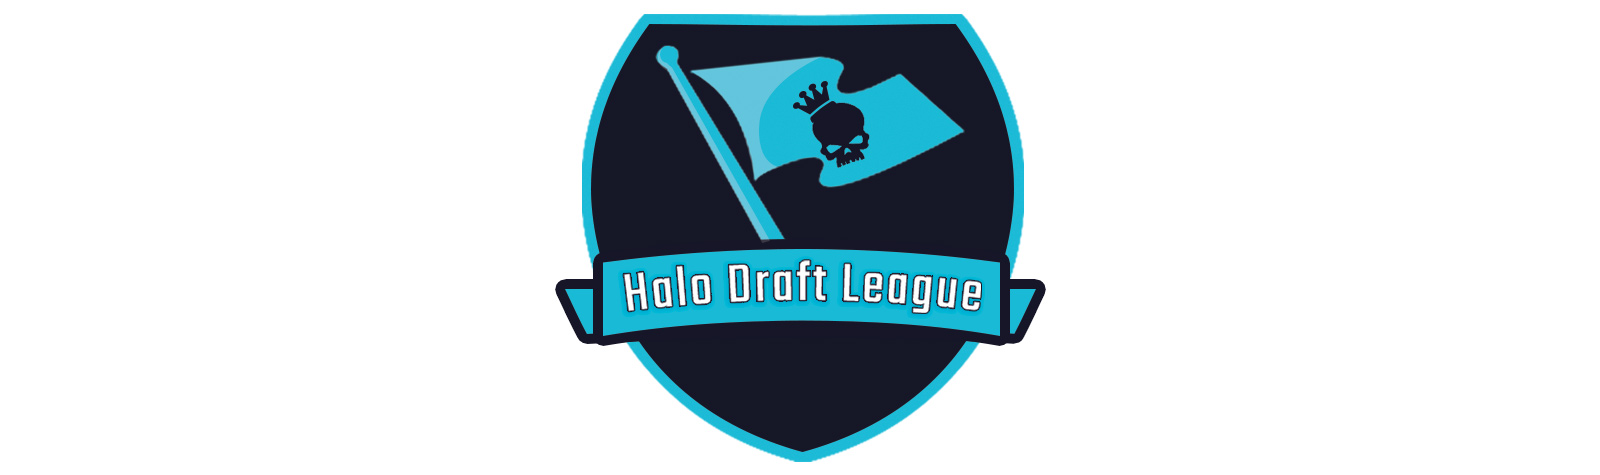 Halo Draft League – Week 2 Standings